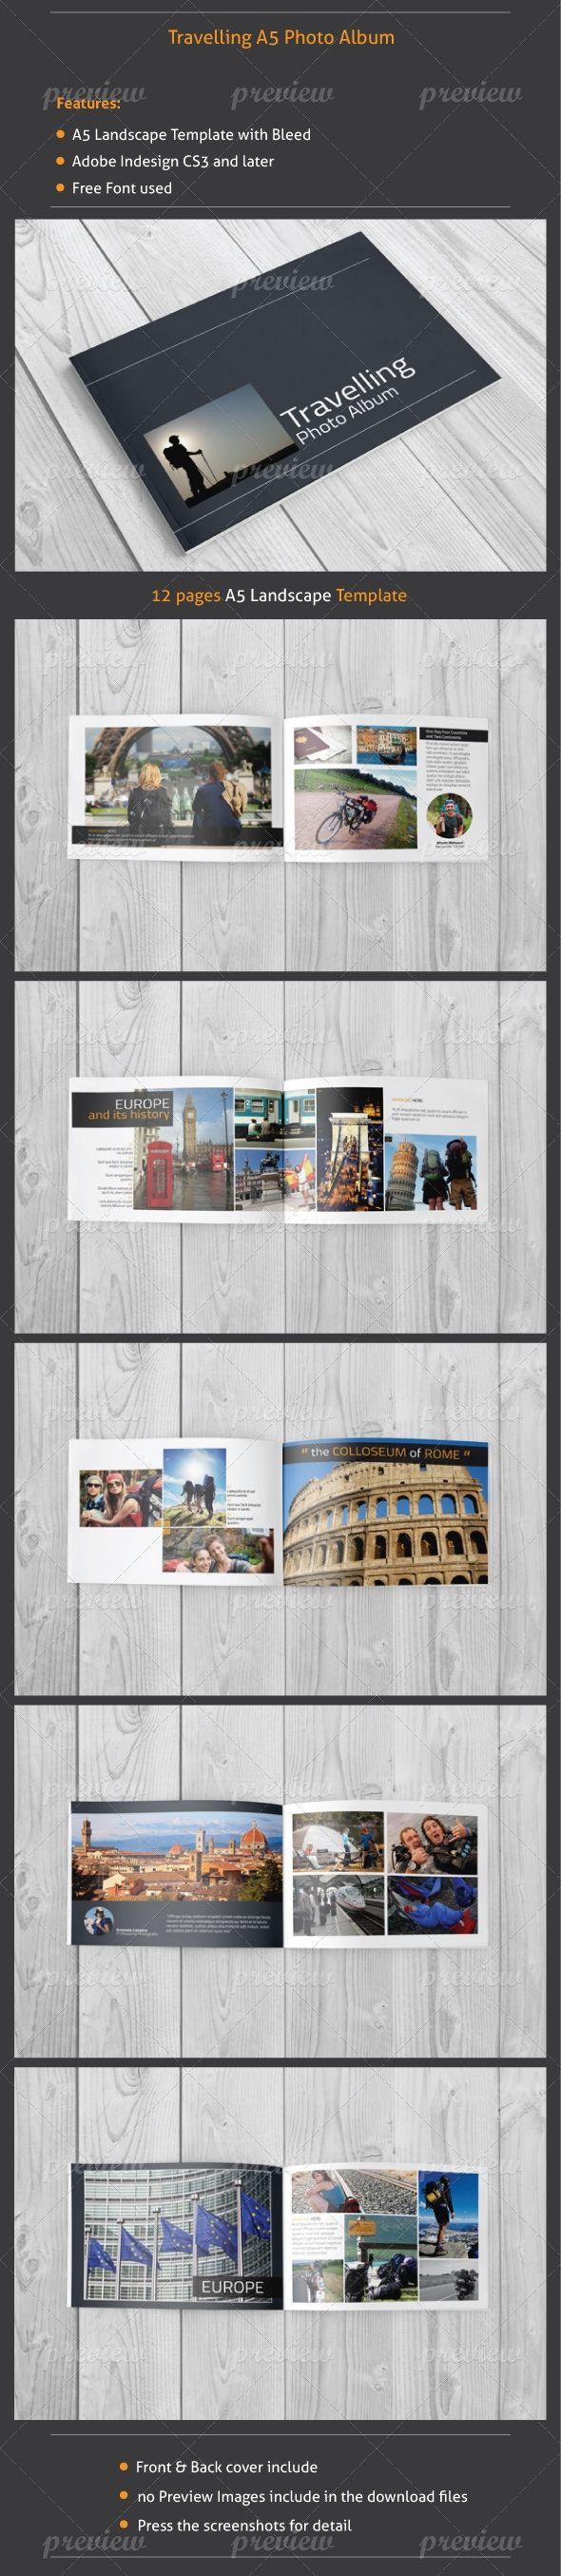 12 Pages Traveling Photo Album including front and back cover (suitable for a company, agency, non-profit, school, etc.) Size: A5 (5.83x8.27 inches) - (148x210 mm) landscape with bleed Worked in:...